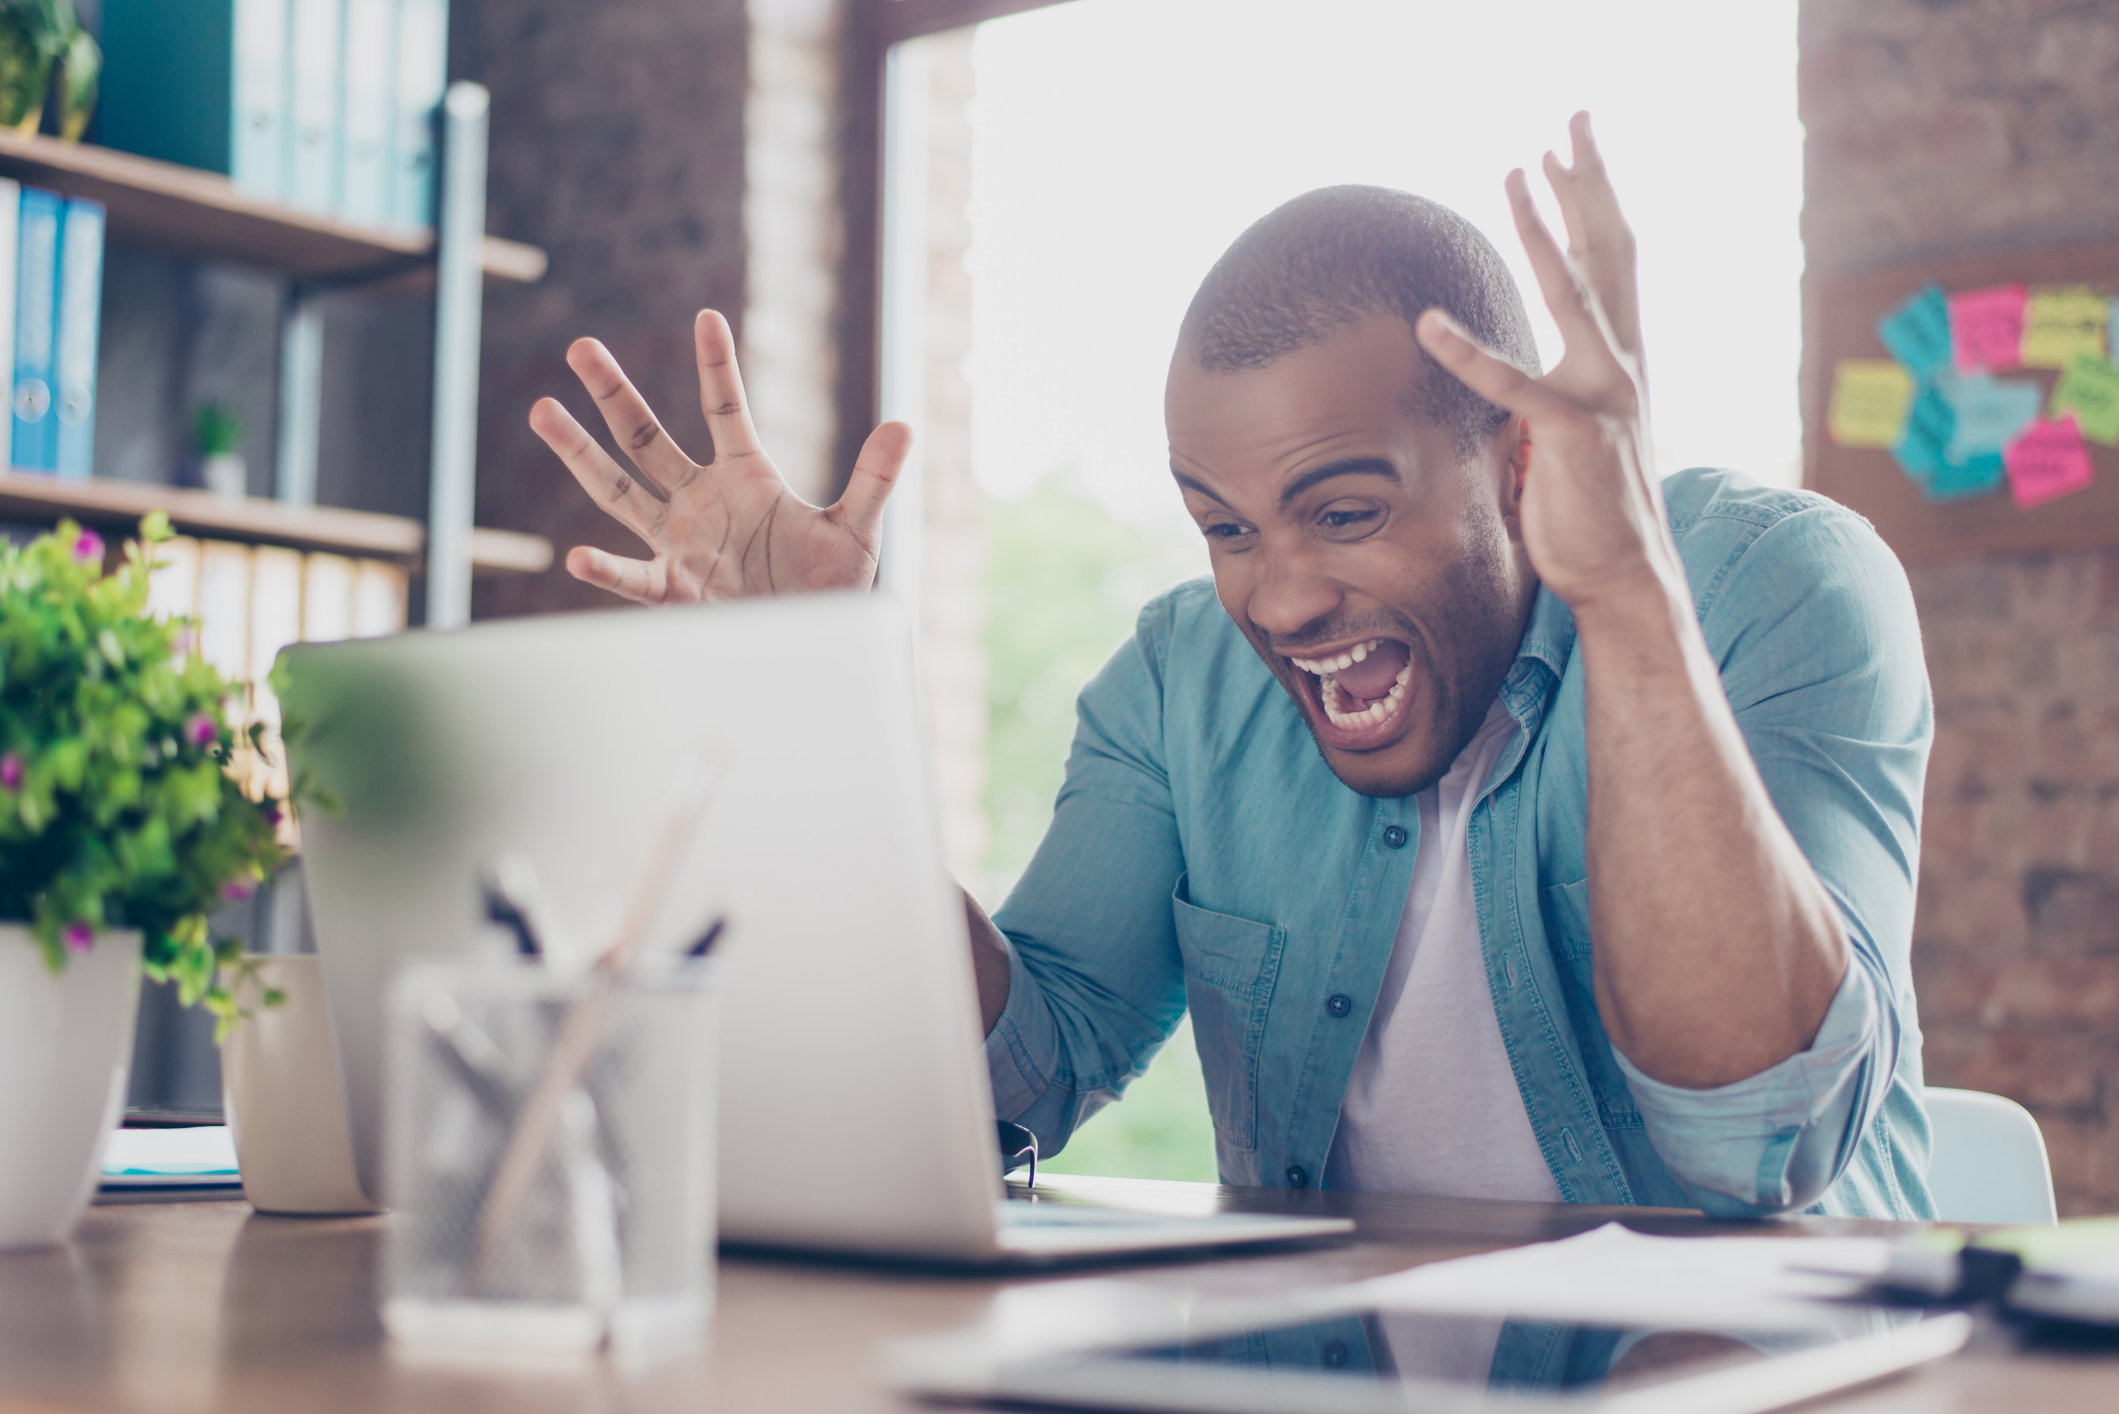 Man in shock yelling at laptop with hands in the air.